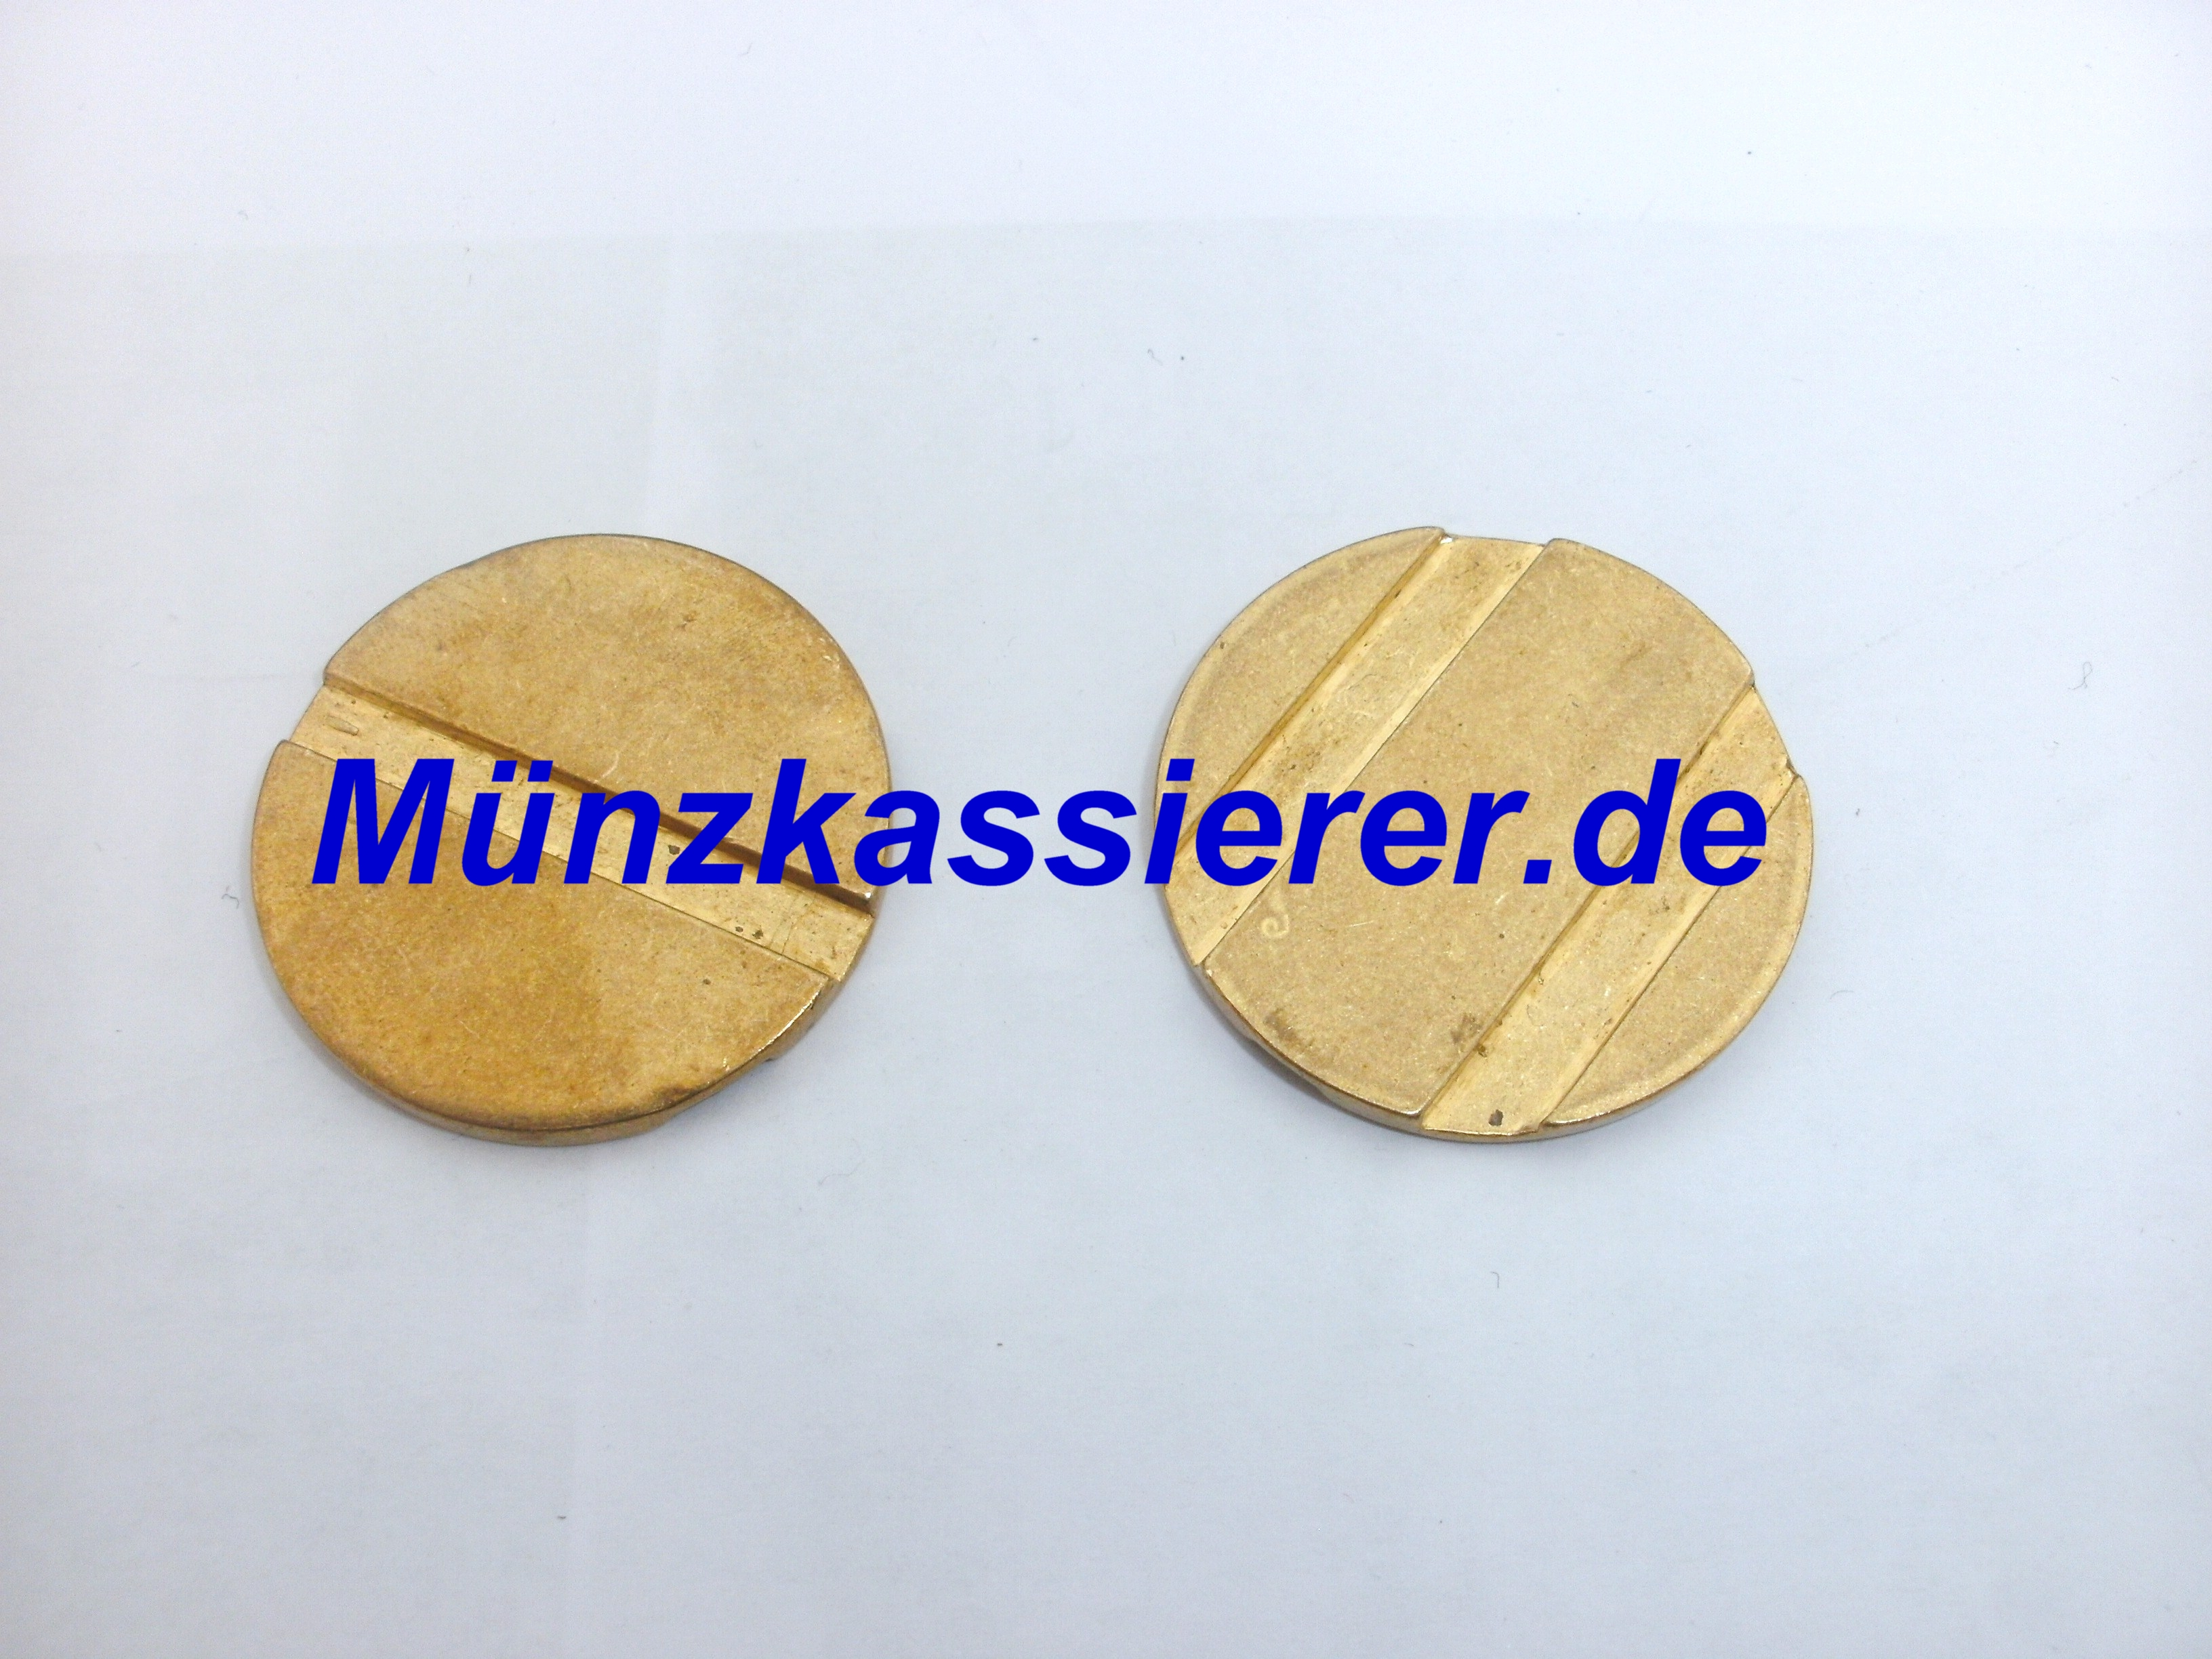 2 Stück// 2  pieces 1N3029B ZENER DIODE with 24V in DO13 Metal package NEW